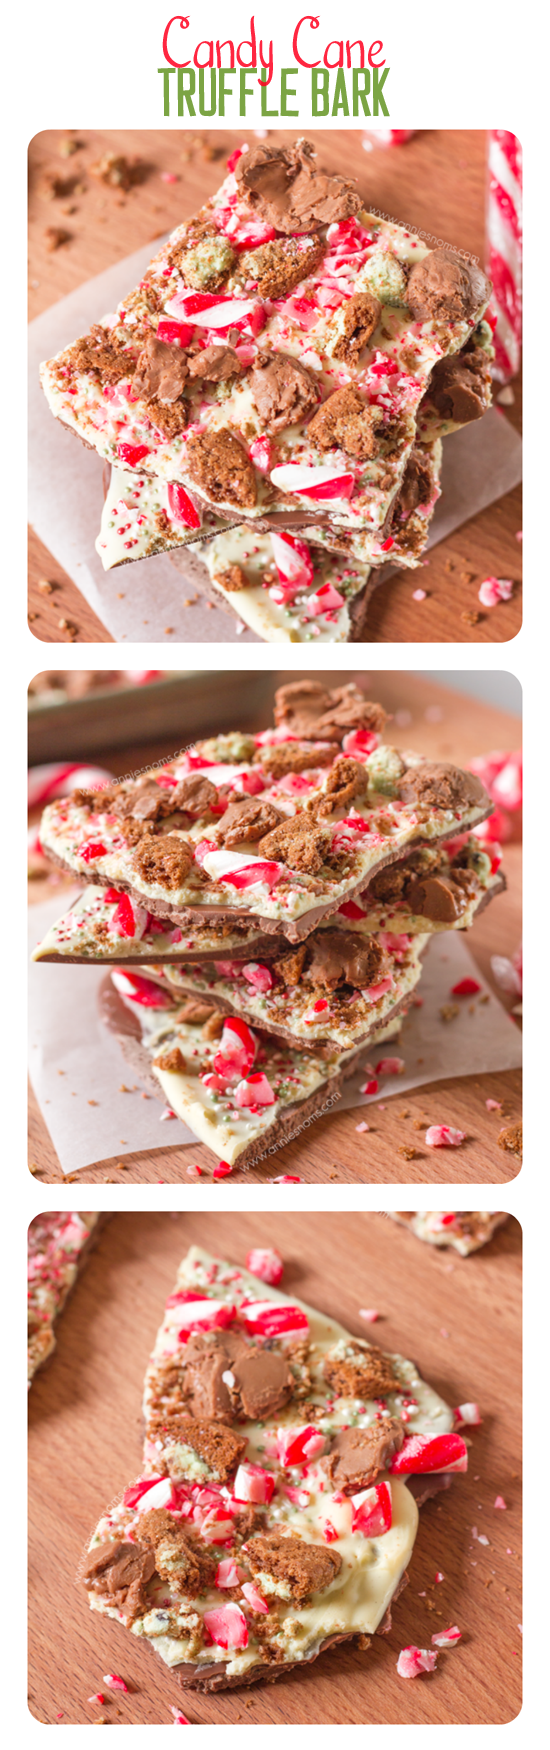 With layers of milk and white chocolate covered in crushed candy canes, mint chocolate biscuits and Lindor truffles, this bark is easy and tastes great!